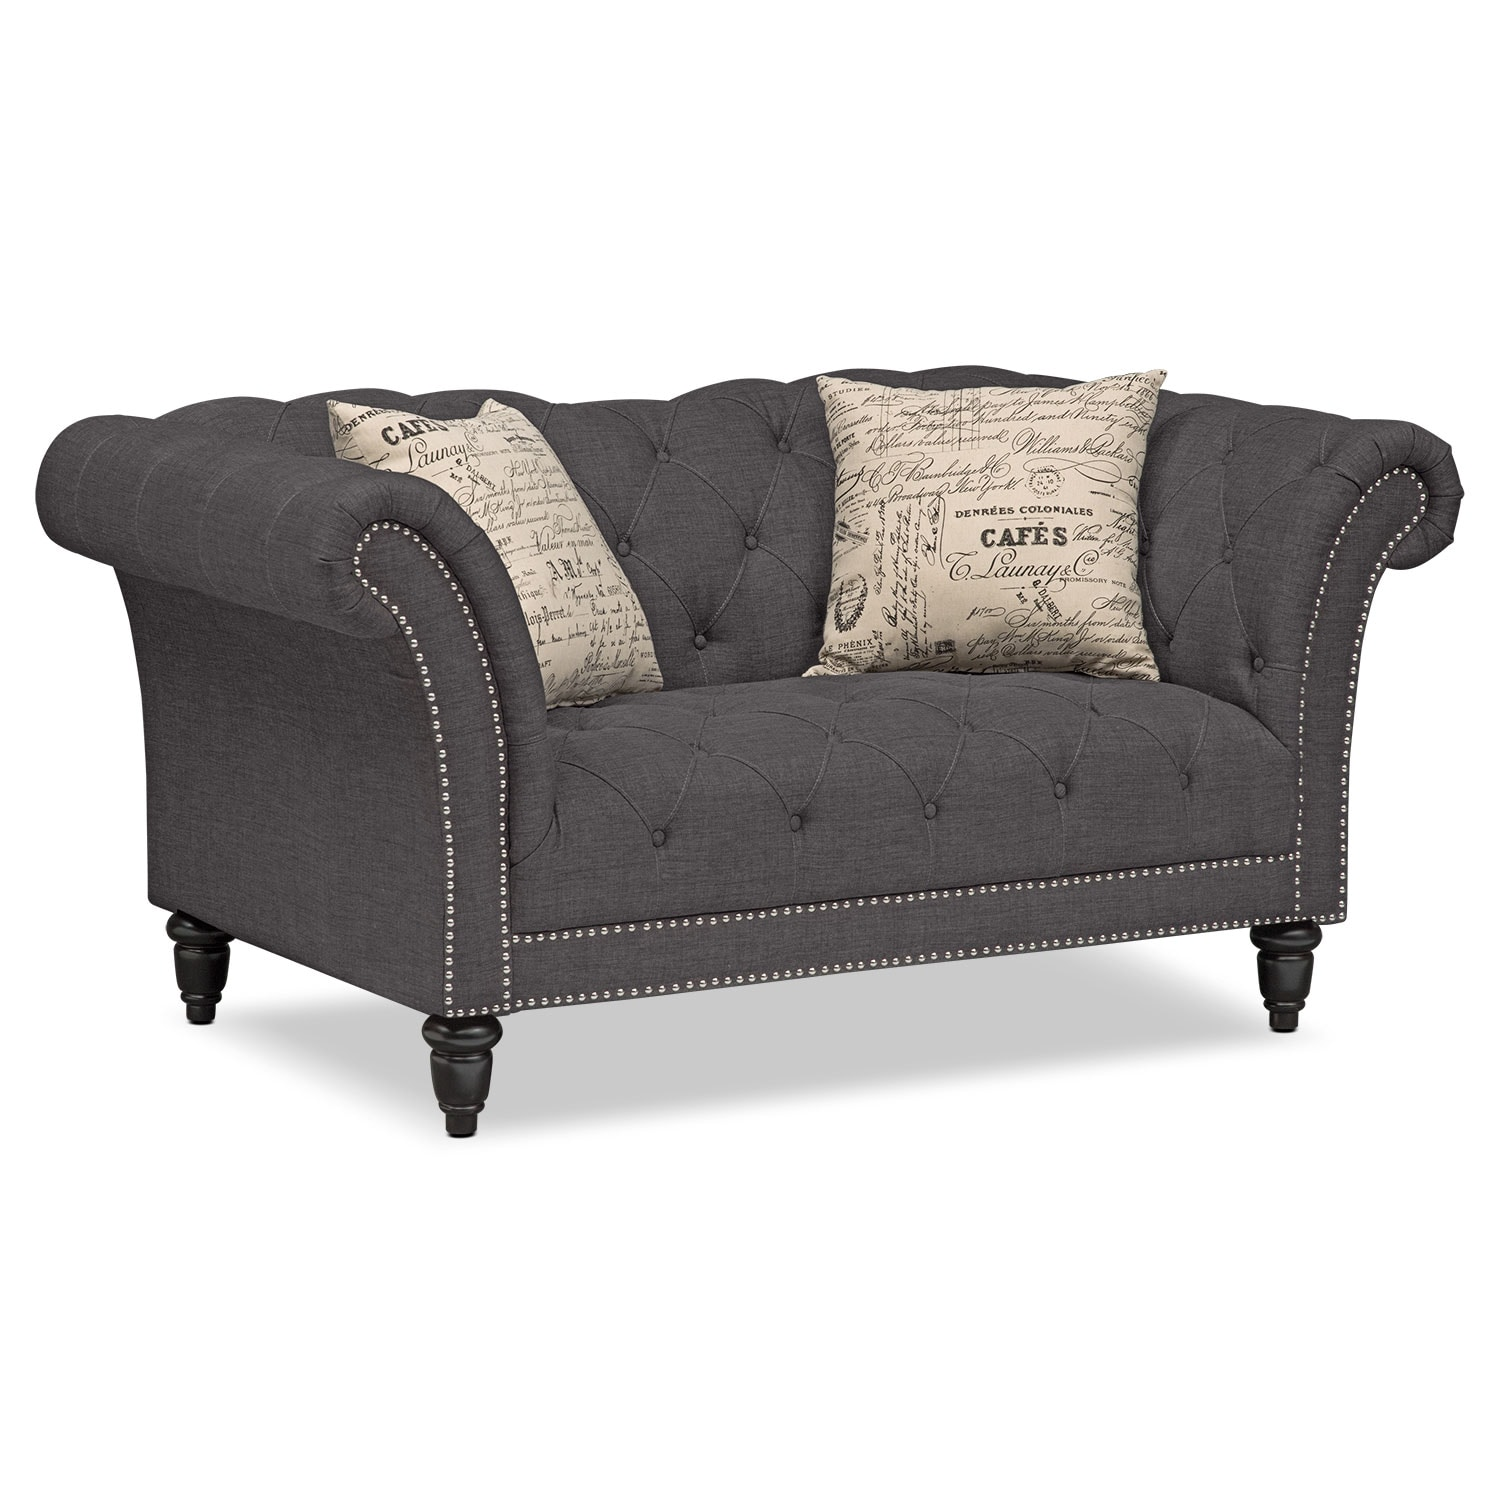 Marisol Loveseat - Charcoal